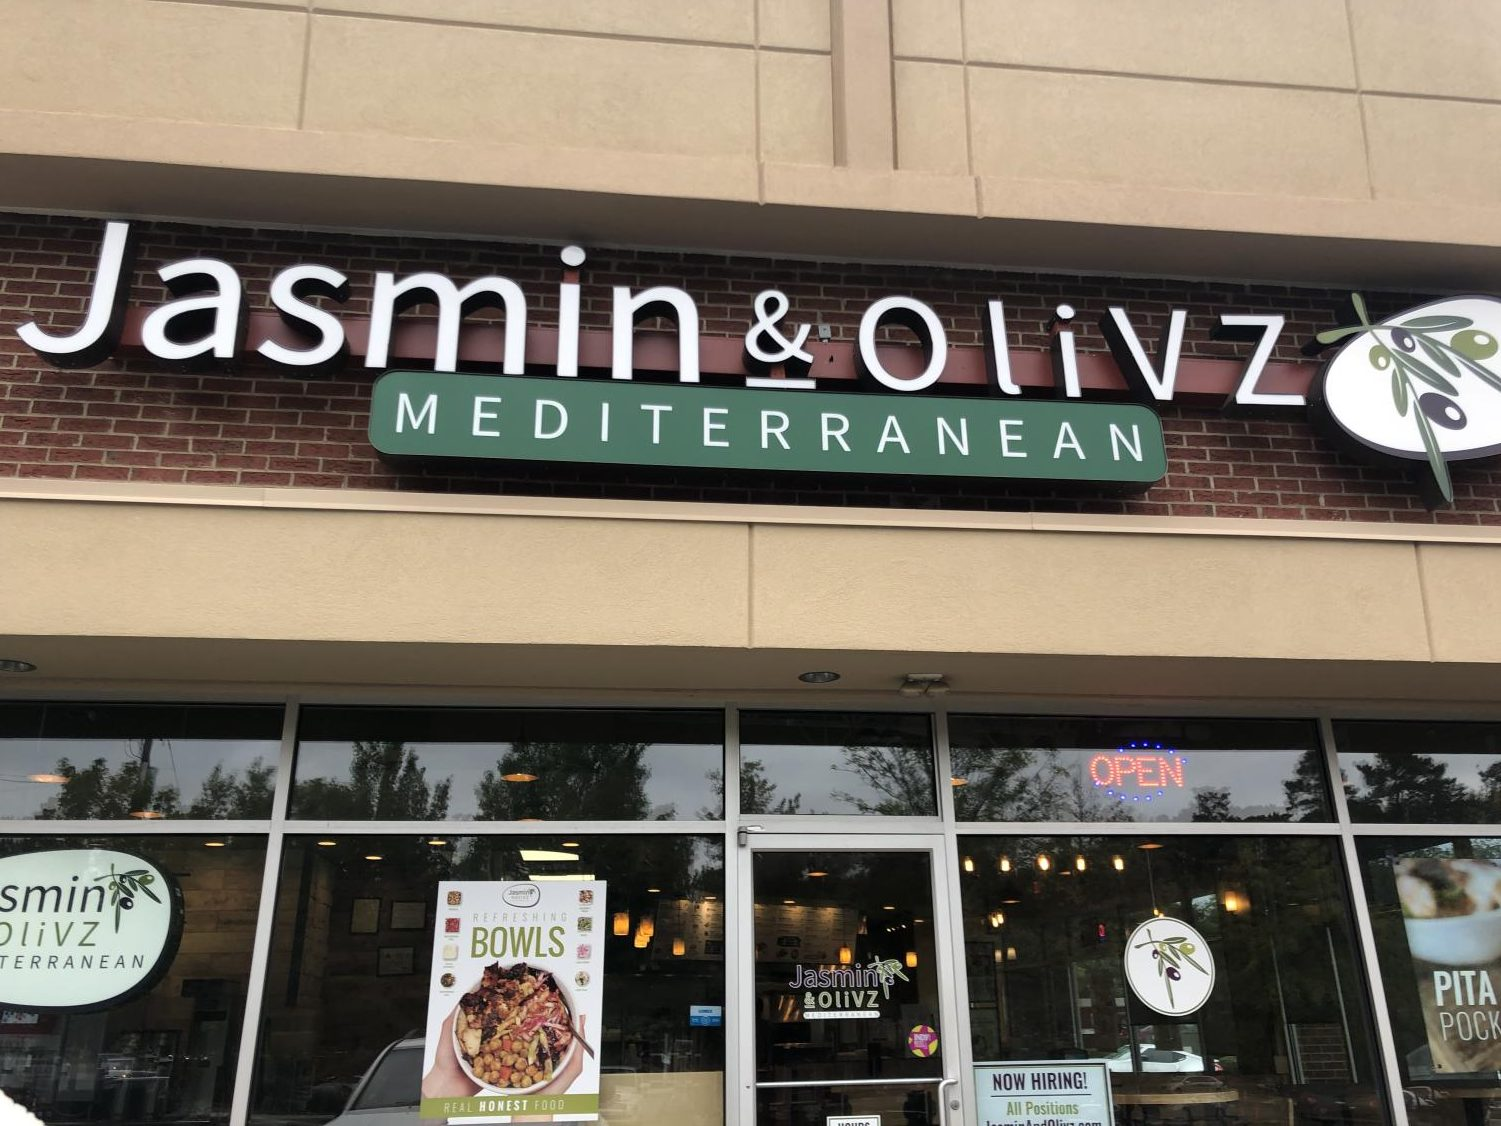 Showcasing their delicious bowls in the storefront window, Jasmin and Olivz offers a wide variety of Mediterranean meals. Jasmin and Olivz is located in the Falls Village shopping center, making it a perfect option for off-campus lunch.